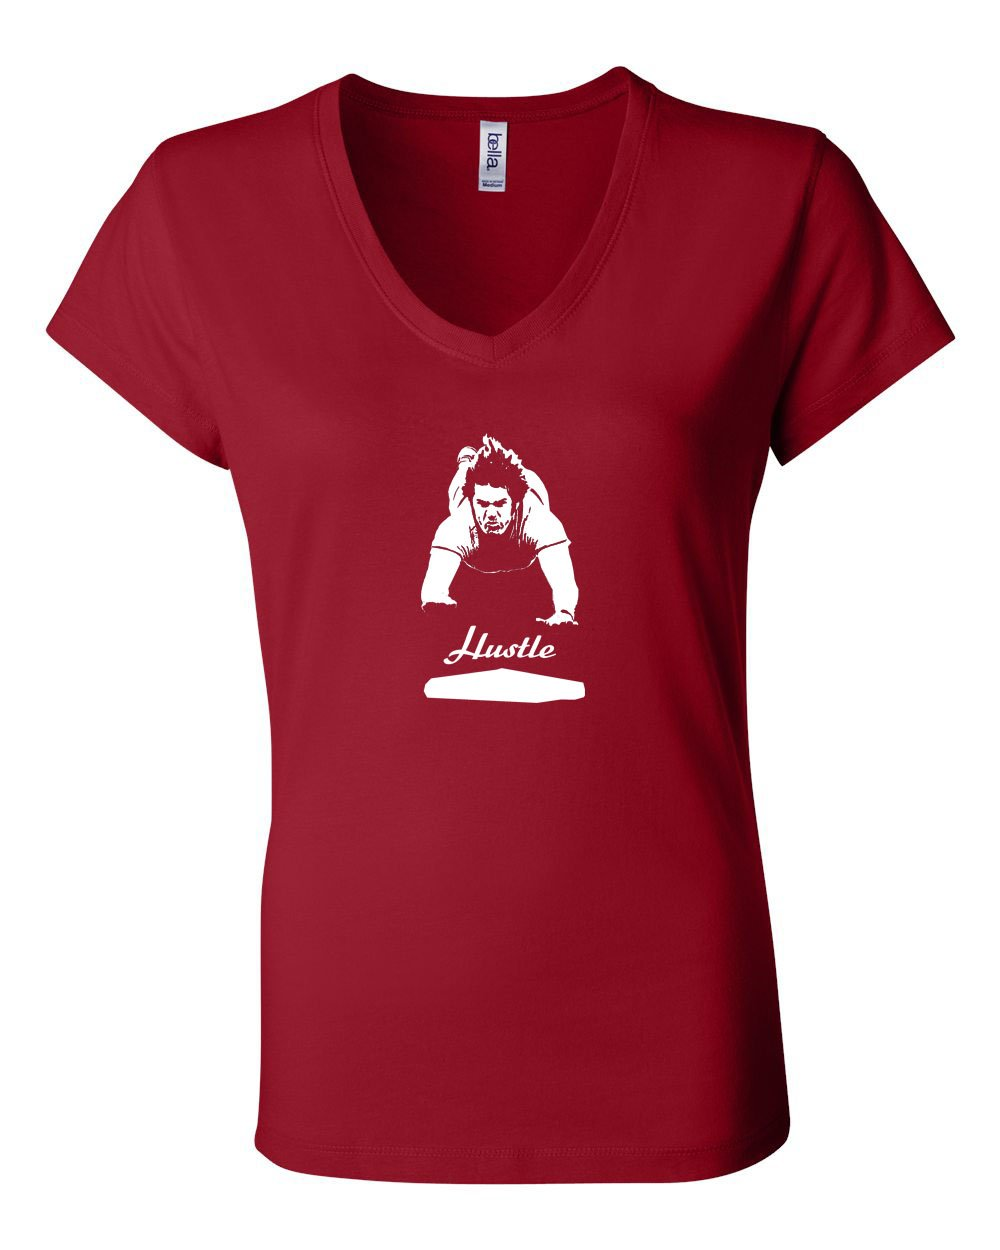 Hustle LADIES Junior Fit V-Neck